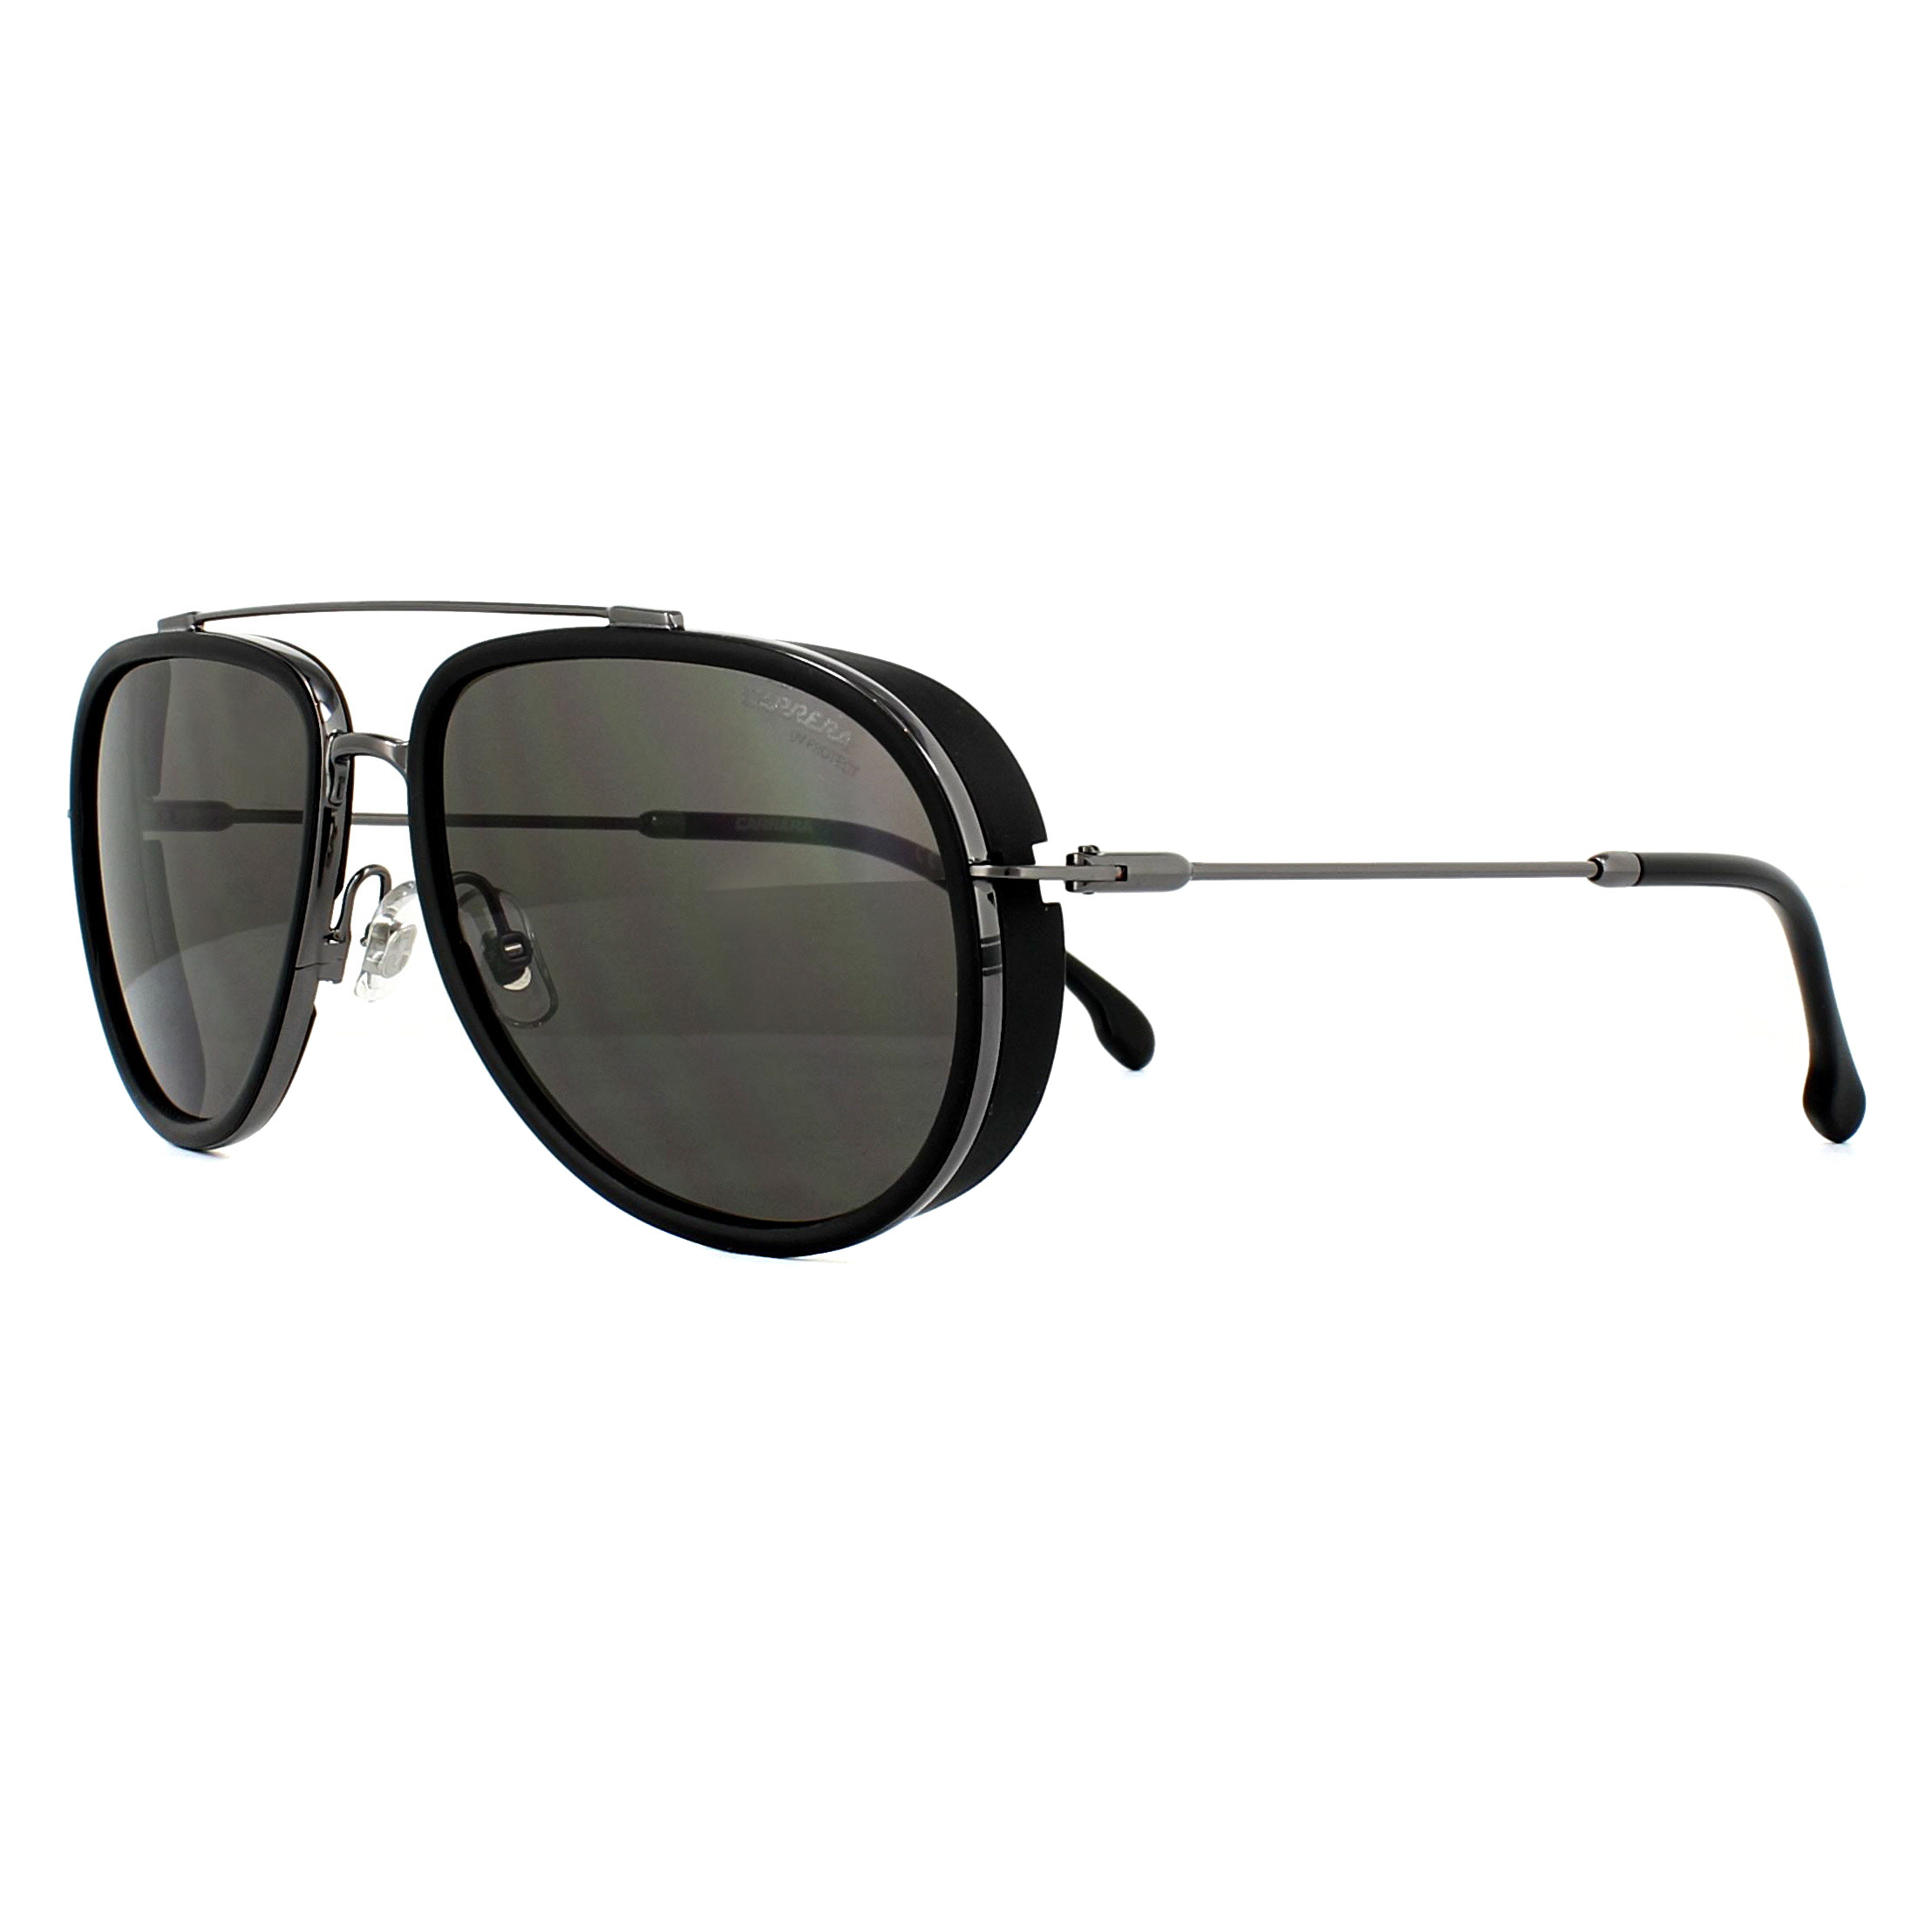 f1deb1bc1b1 Sentinel Carrera Sunglasses 166 S KJ1 IR Dark Ruthenium Grey